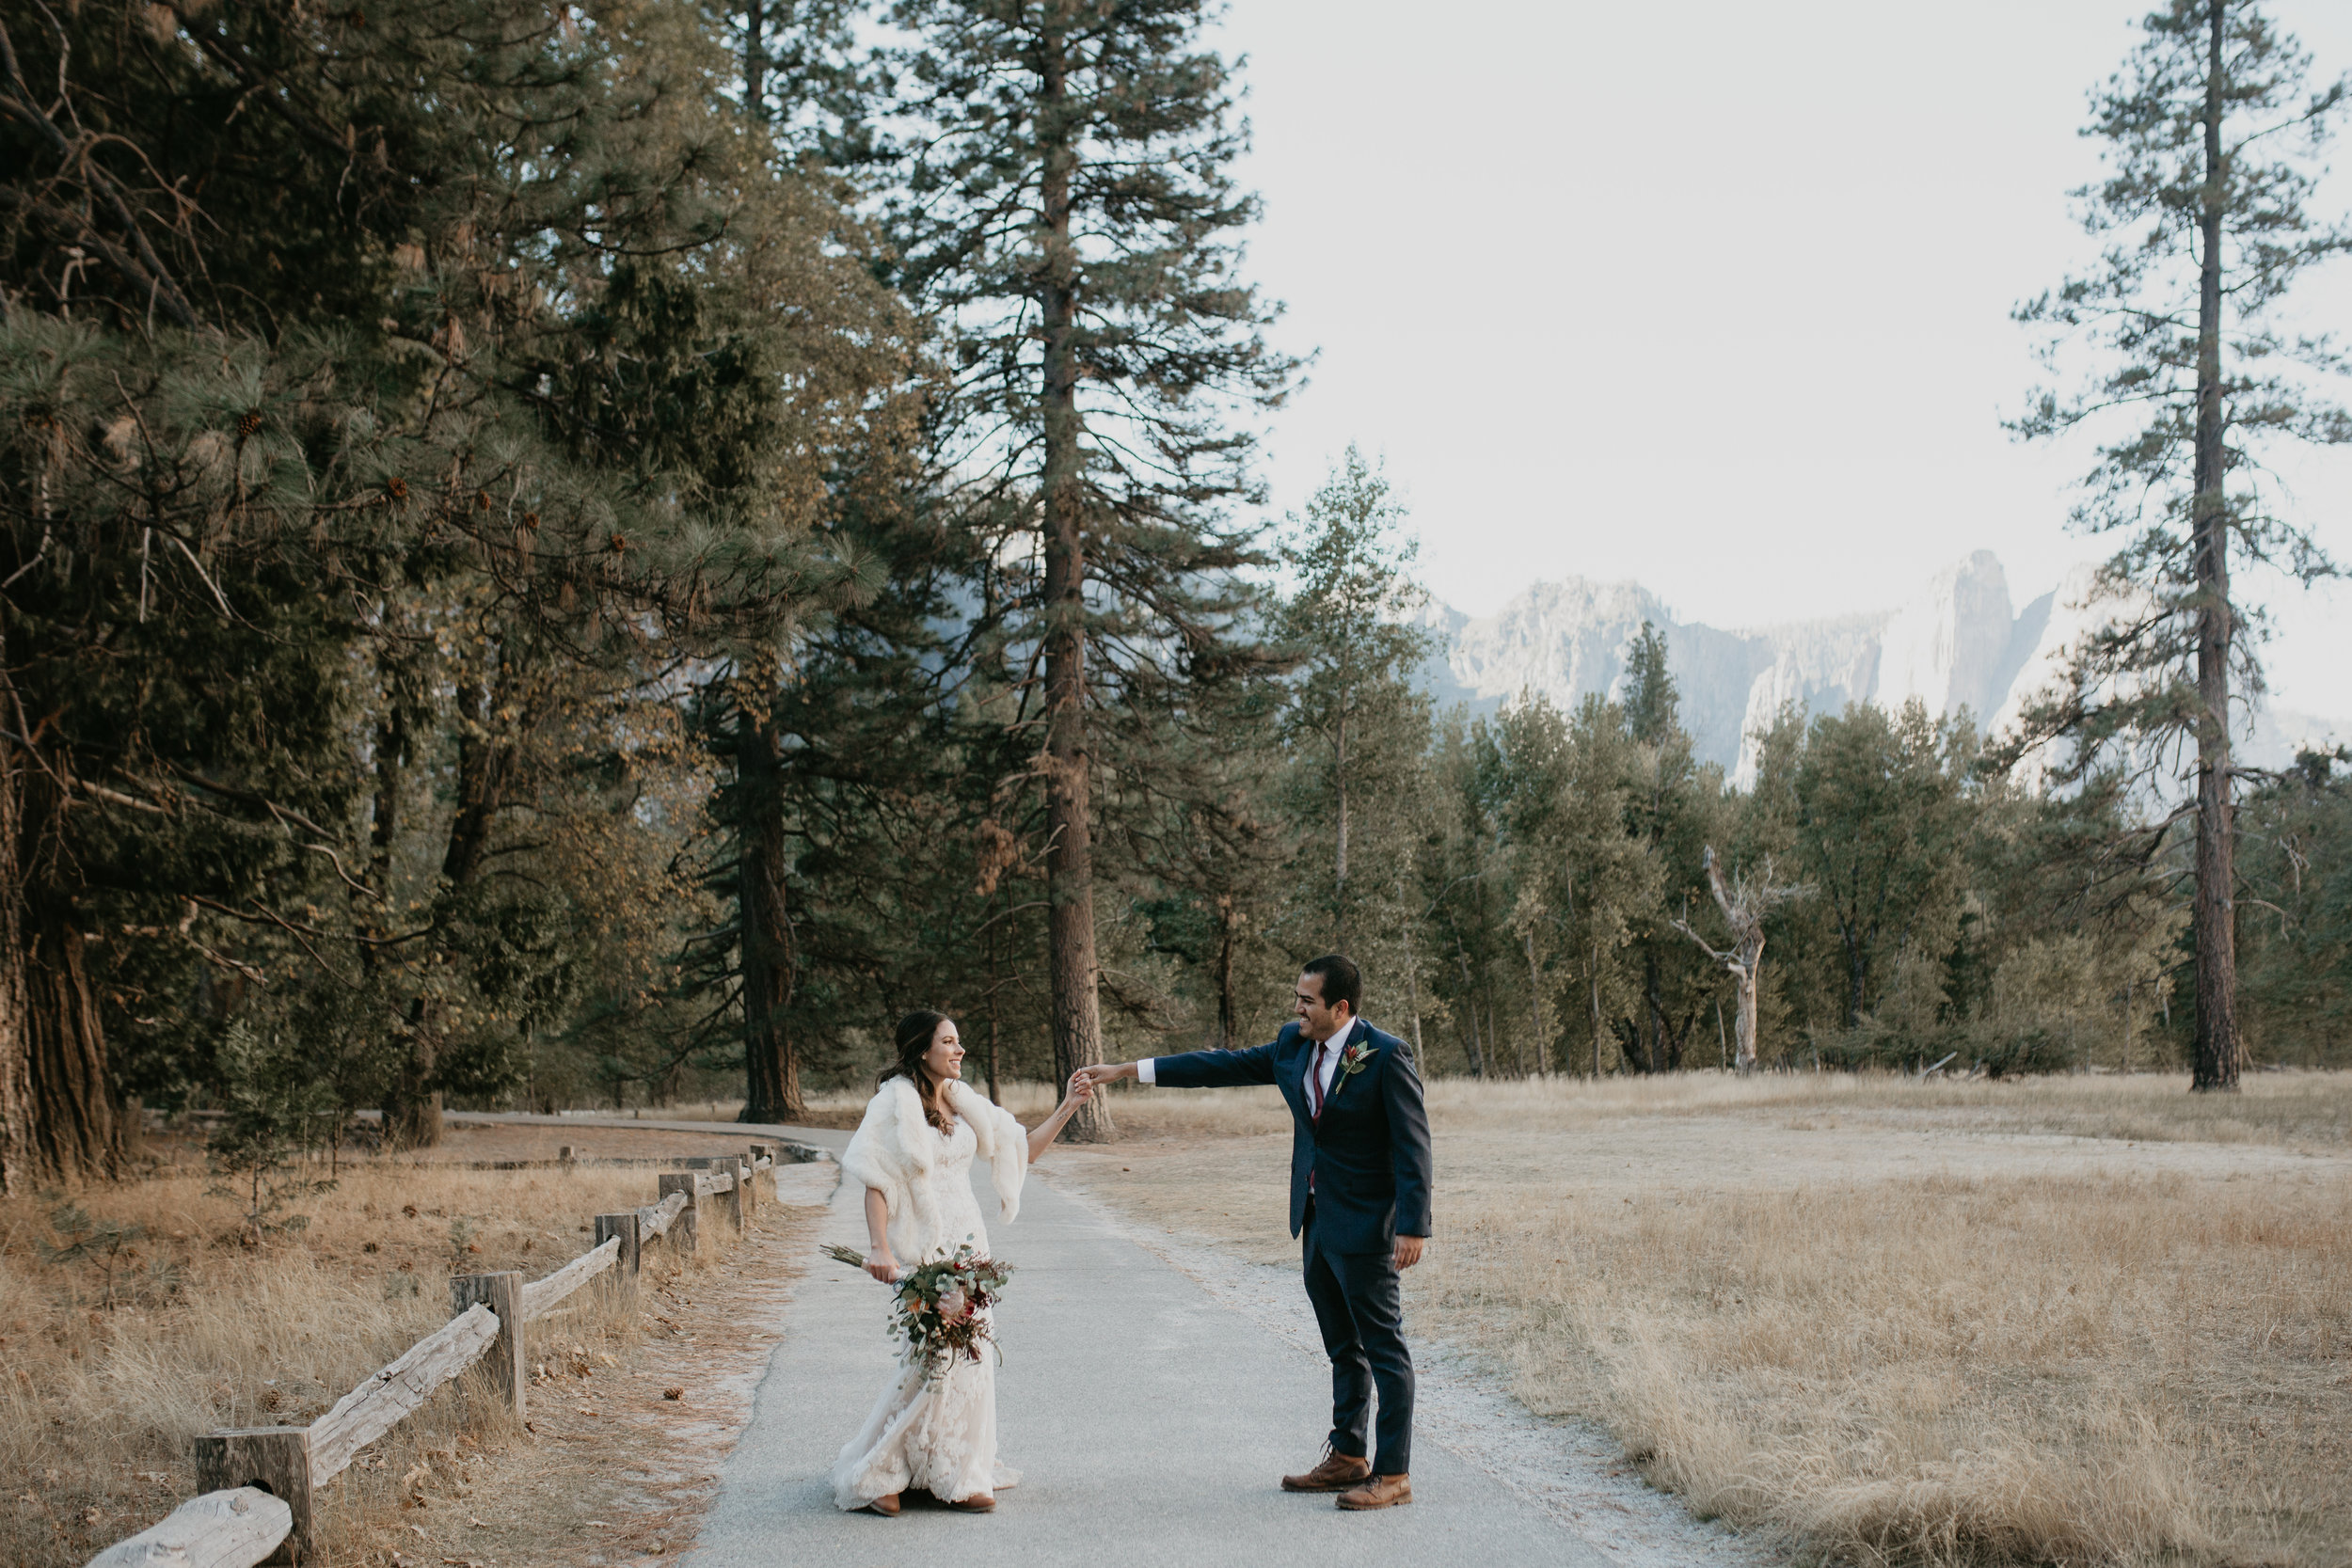 nicole-daacke-photography-intimate-elopement-wedding-yosemite-national-park-california-taft-point-sunset-photos-yosemite-valley-tunnel-view-first-look-sunrise-golden-granite-hiking-adventure-wedding-adventurous-elopement-photographer-28.jpg